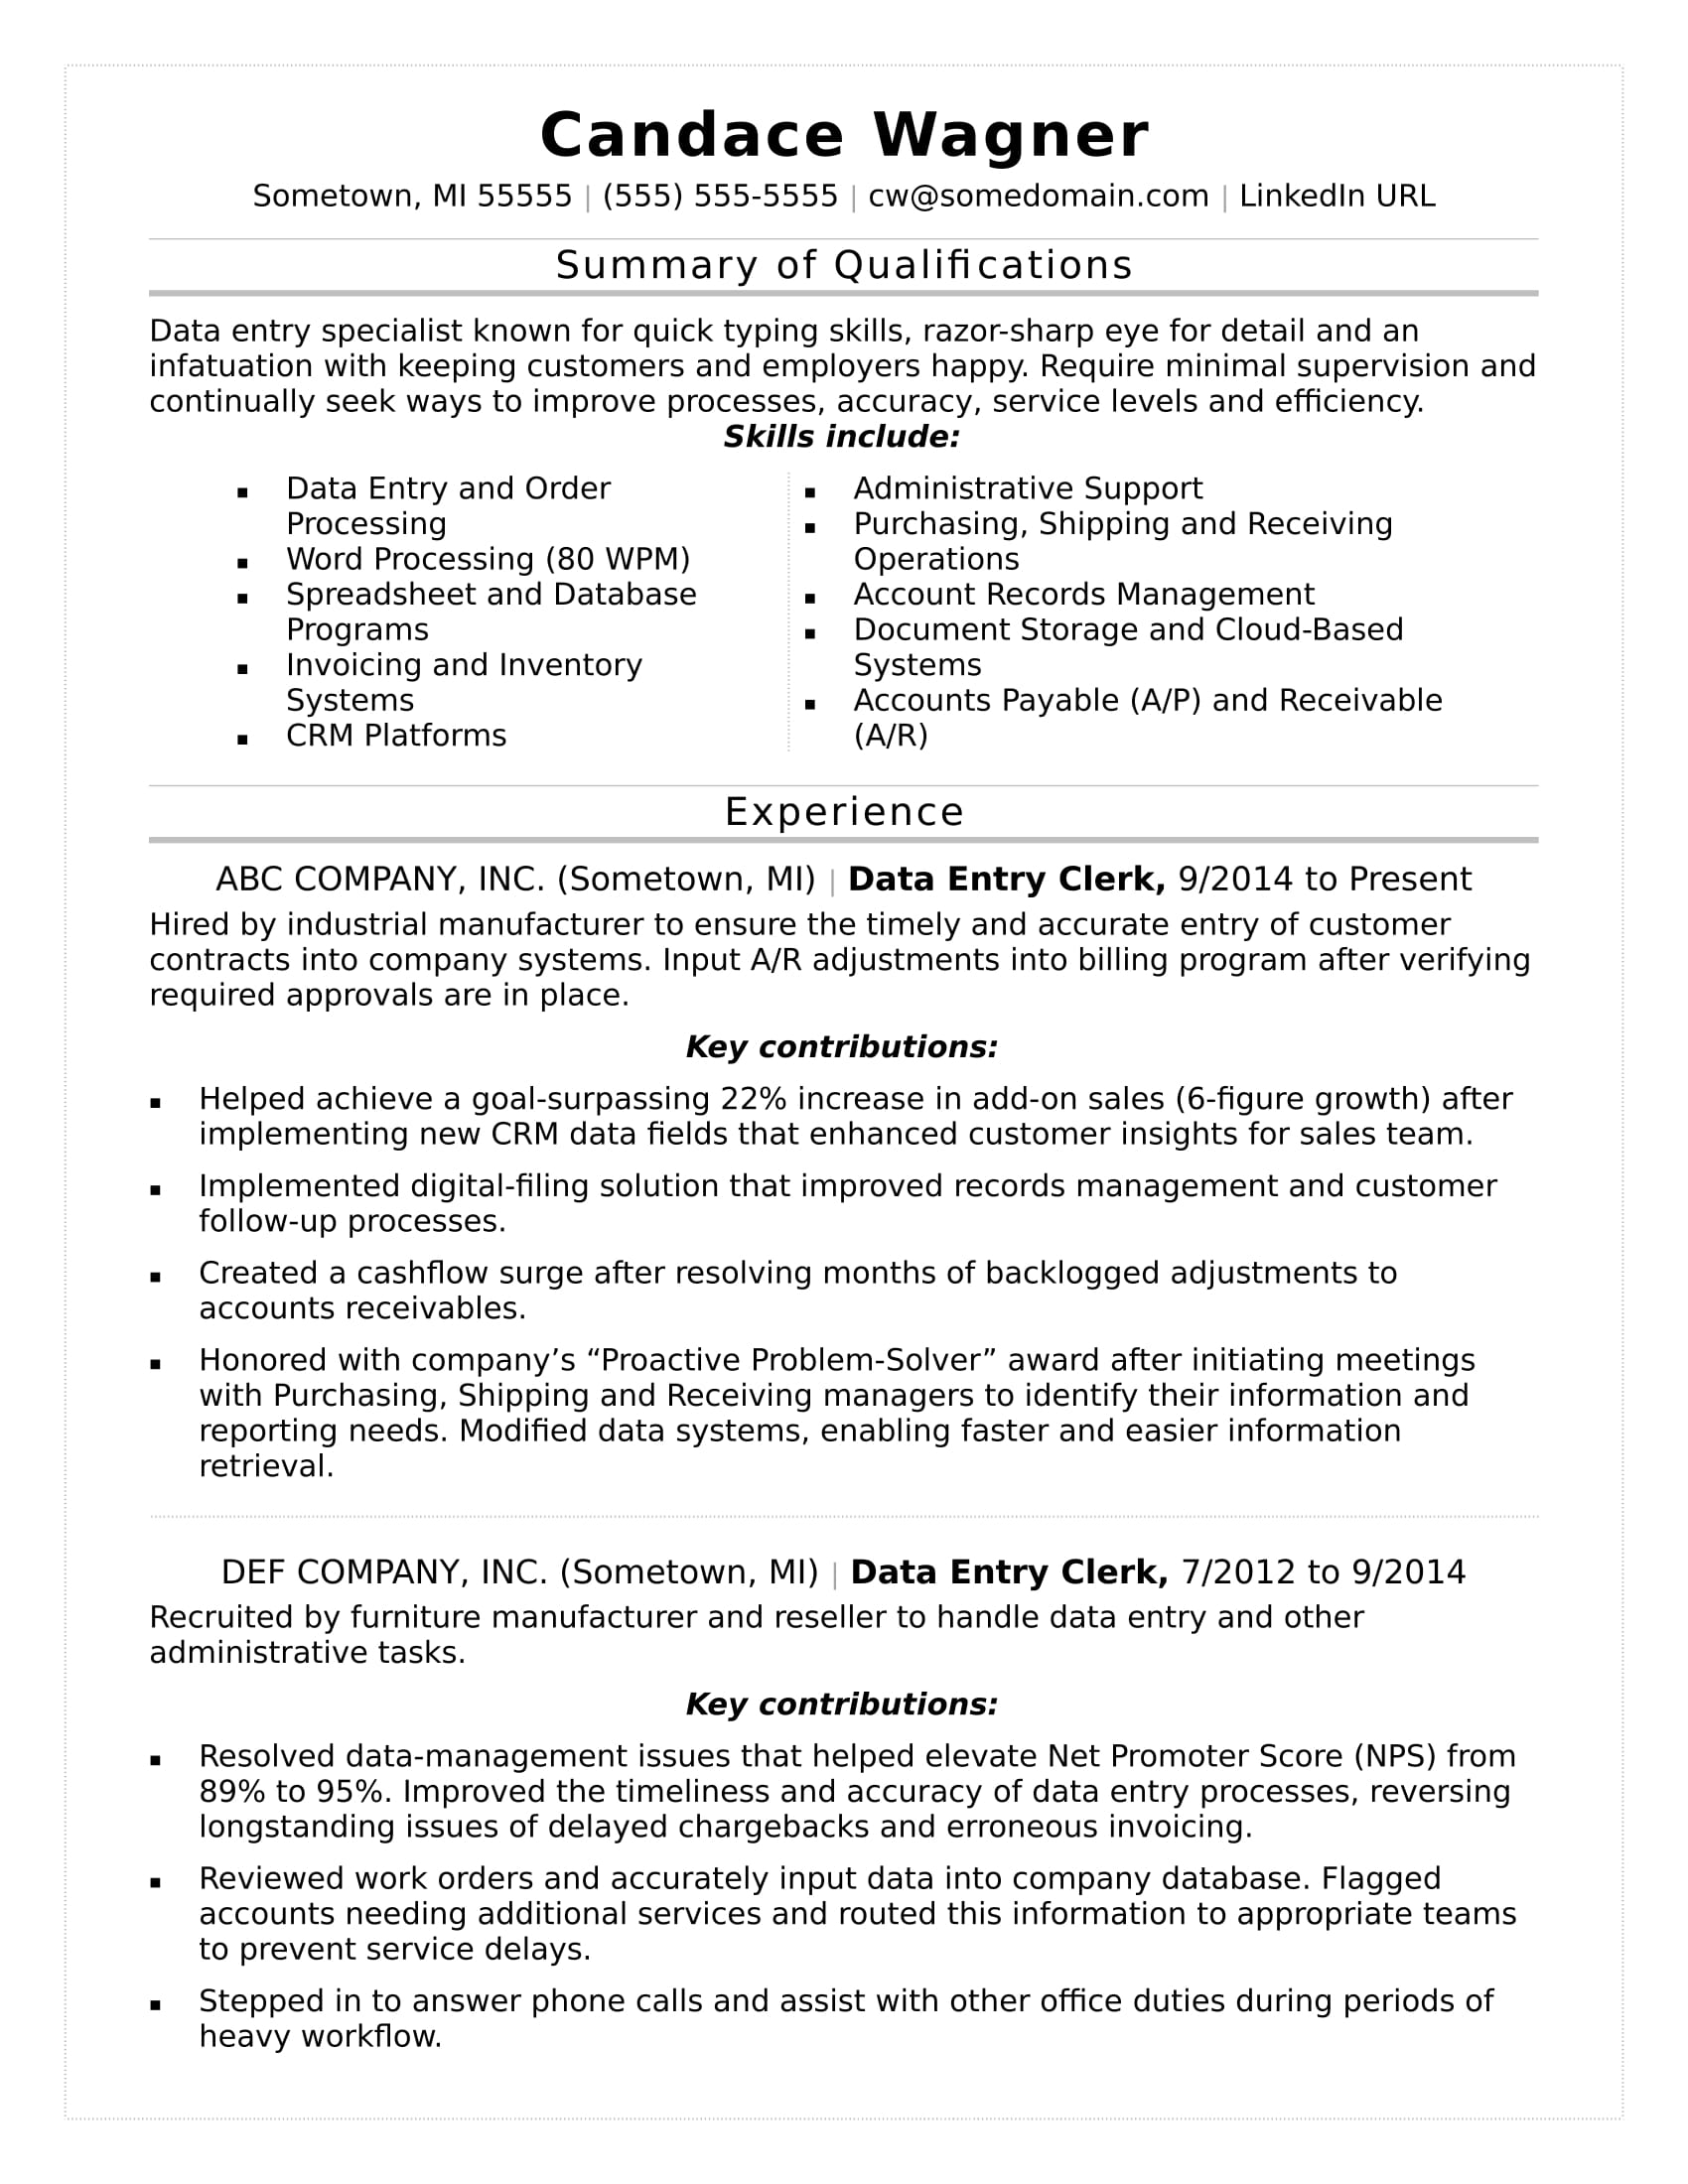 Posting Resume On Monster Data Entry Resume Sample Monster